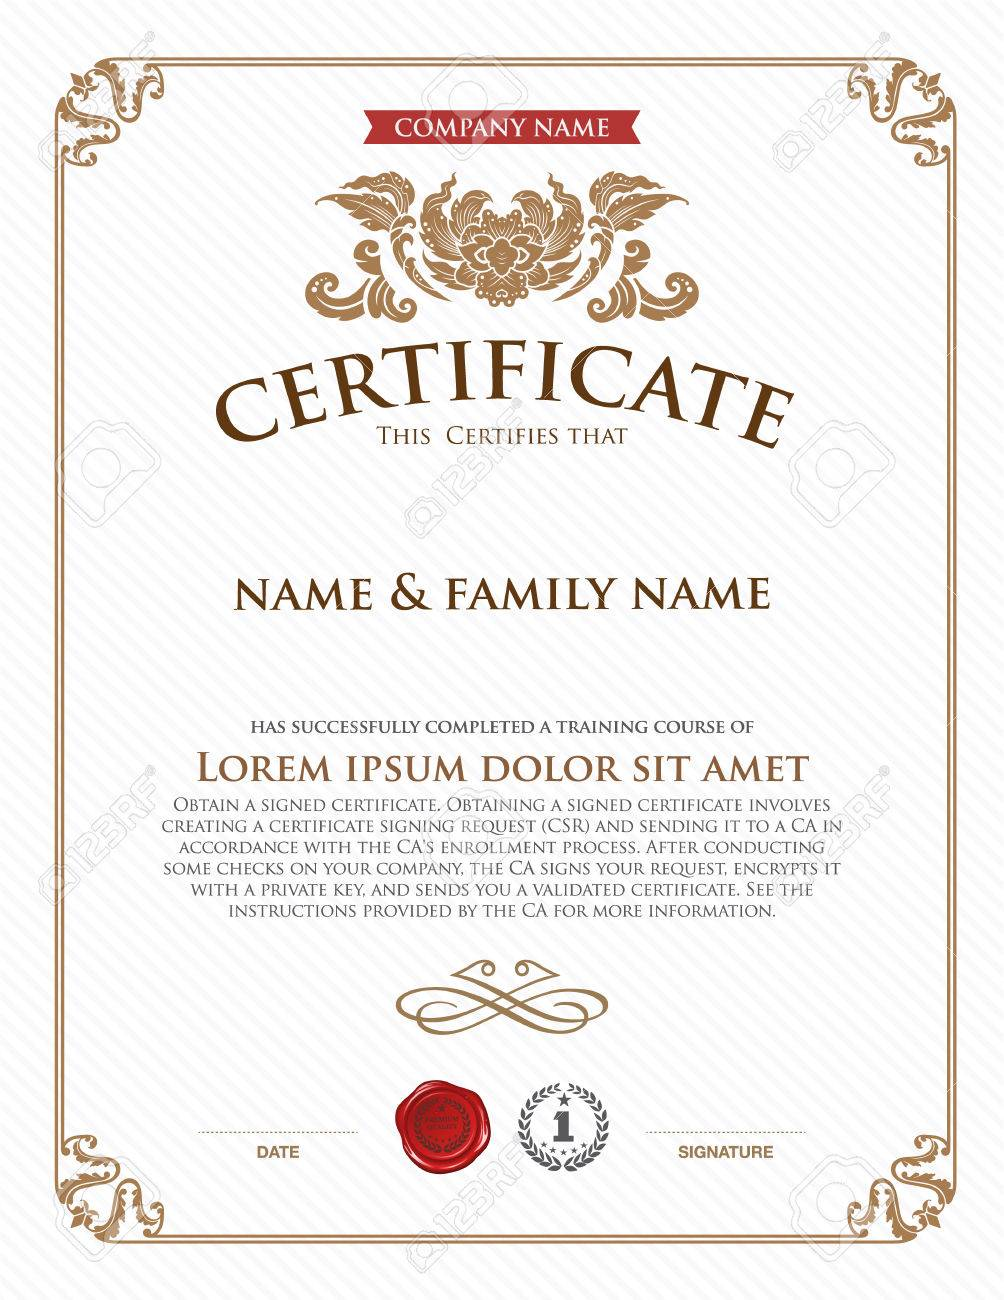 Certificate Template. Royalty Free Cliparts, Vectors, And Stock ...